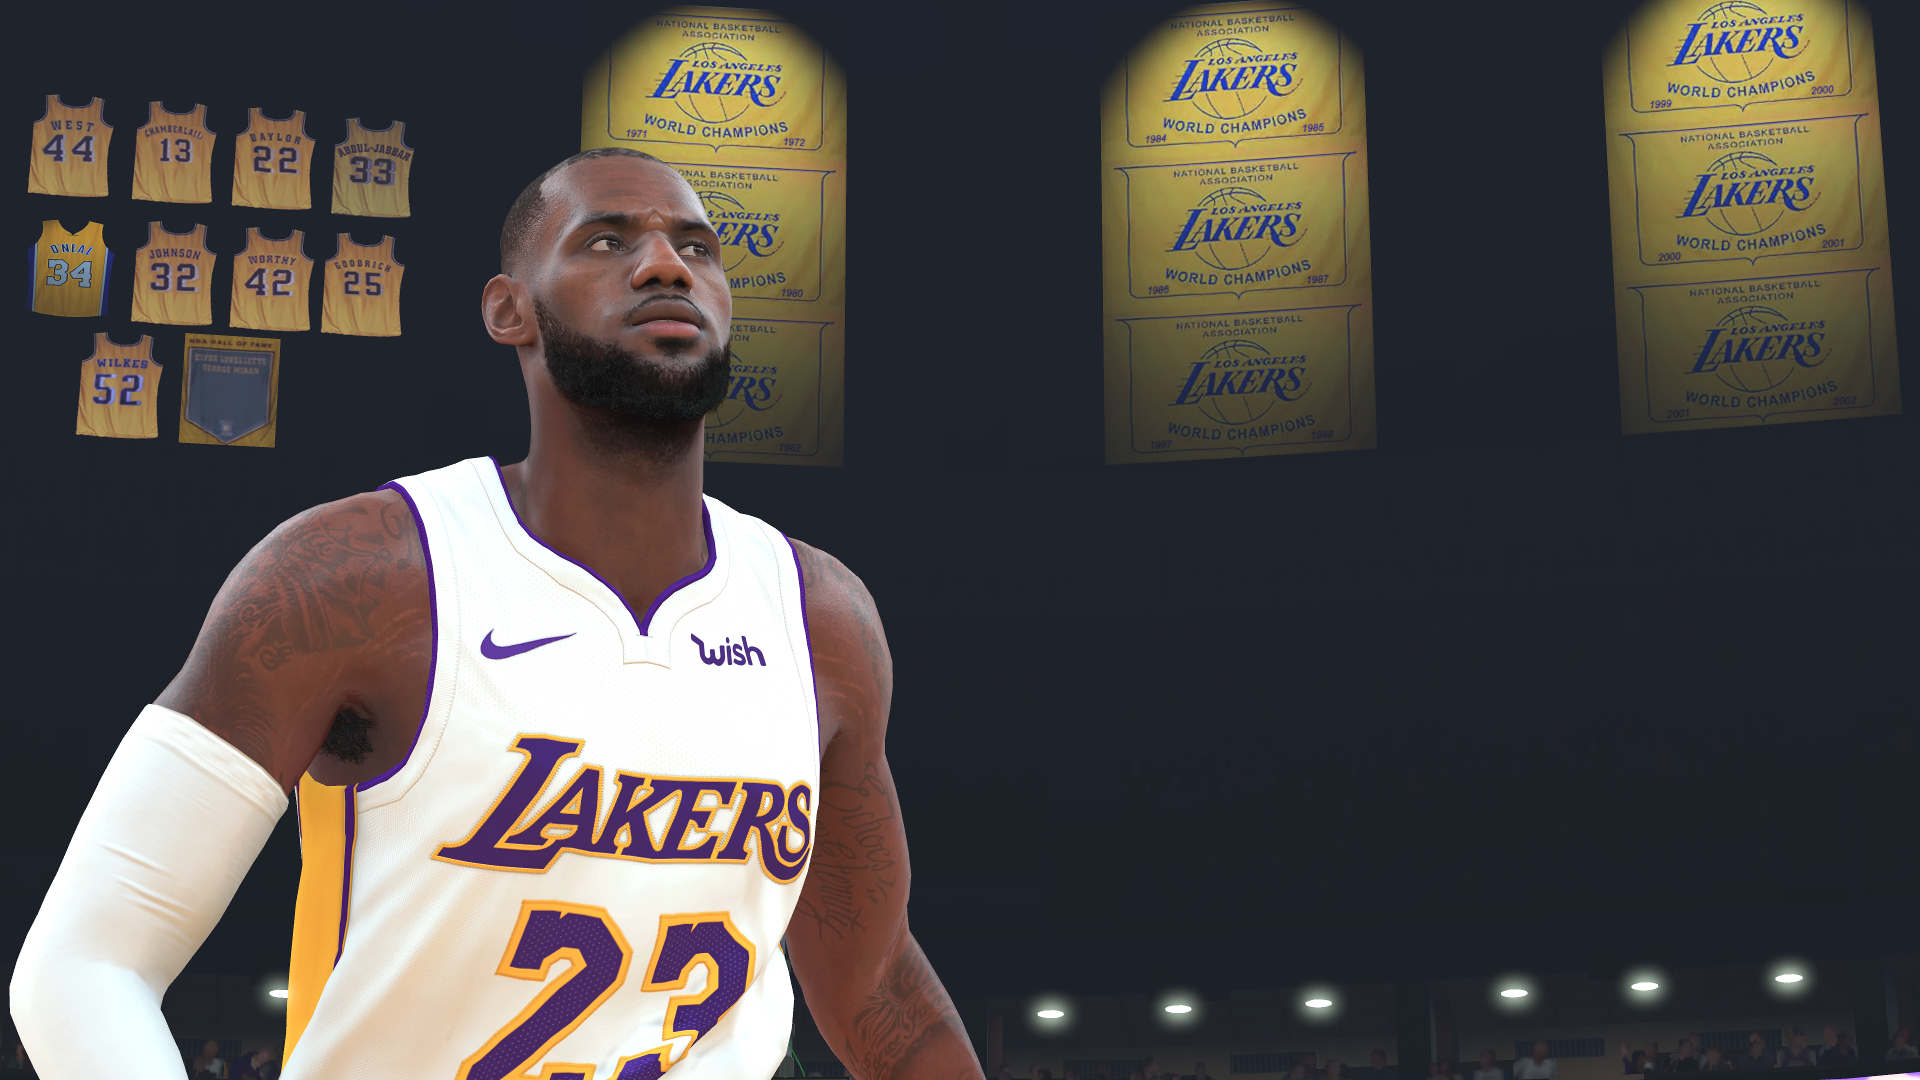 424918cbfc9b LeBron James reacts to  NBA 2K19  rating  Not bad  for such an old head